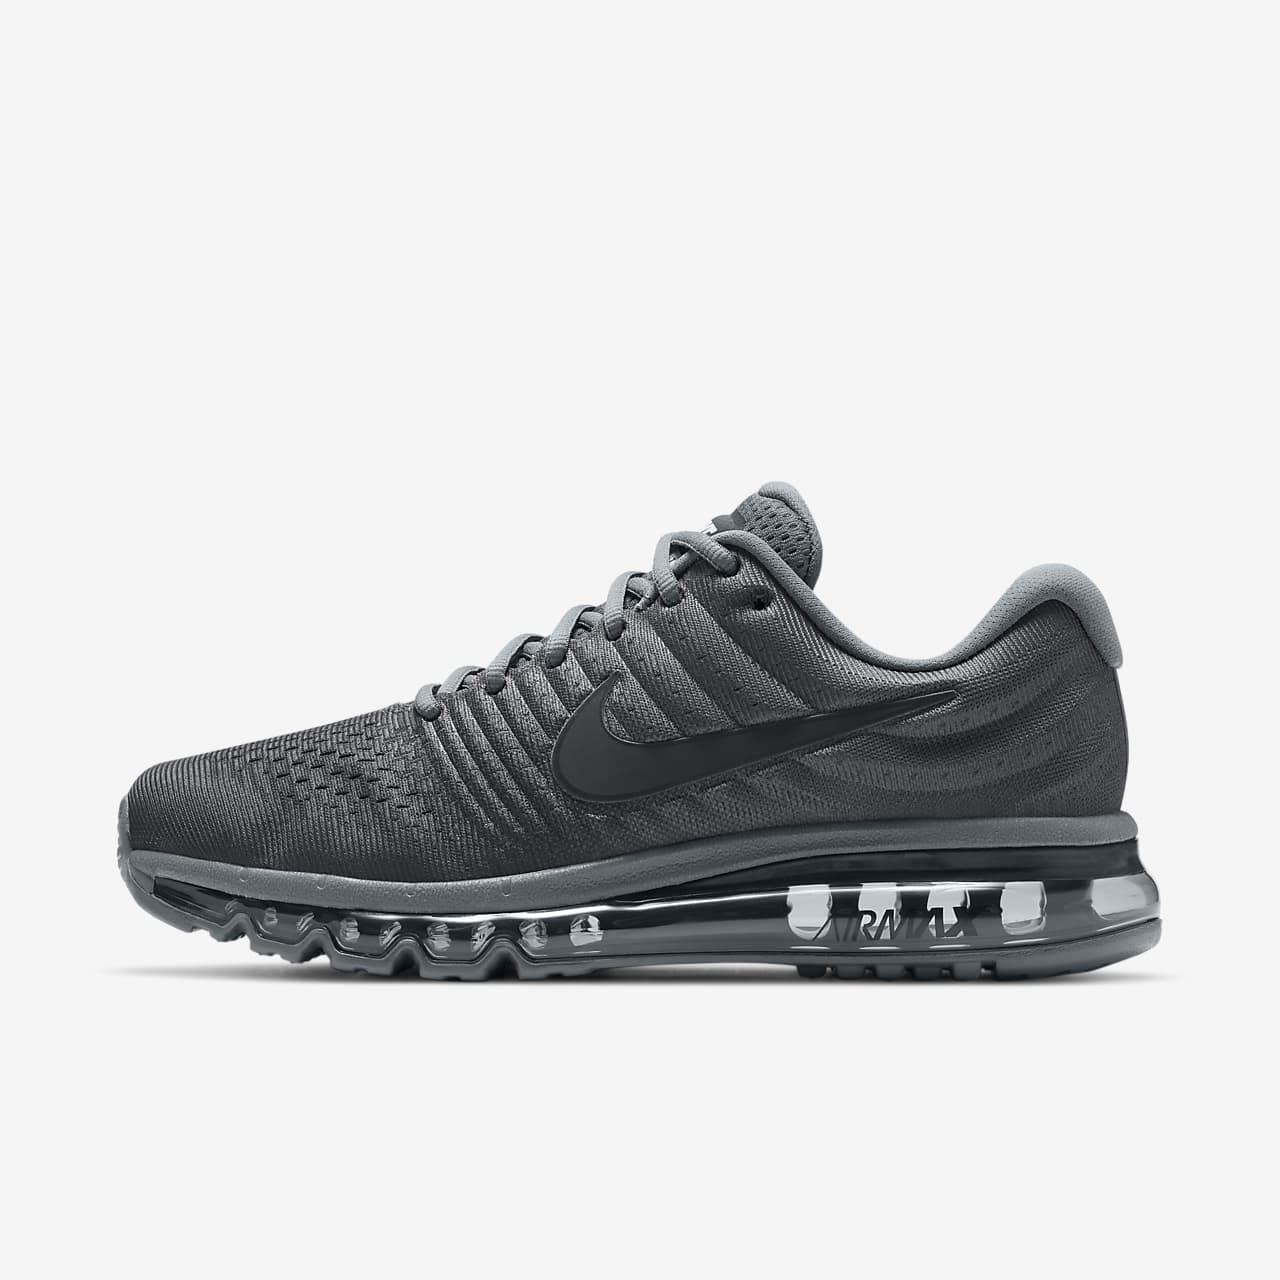 051b5e31b11 Nike Air Max 2017 Men s Shoe. Nike.com